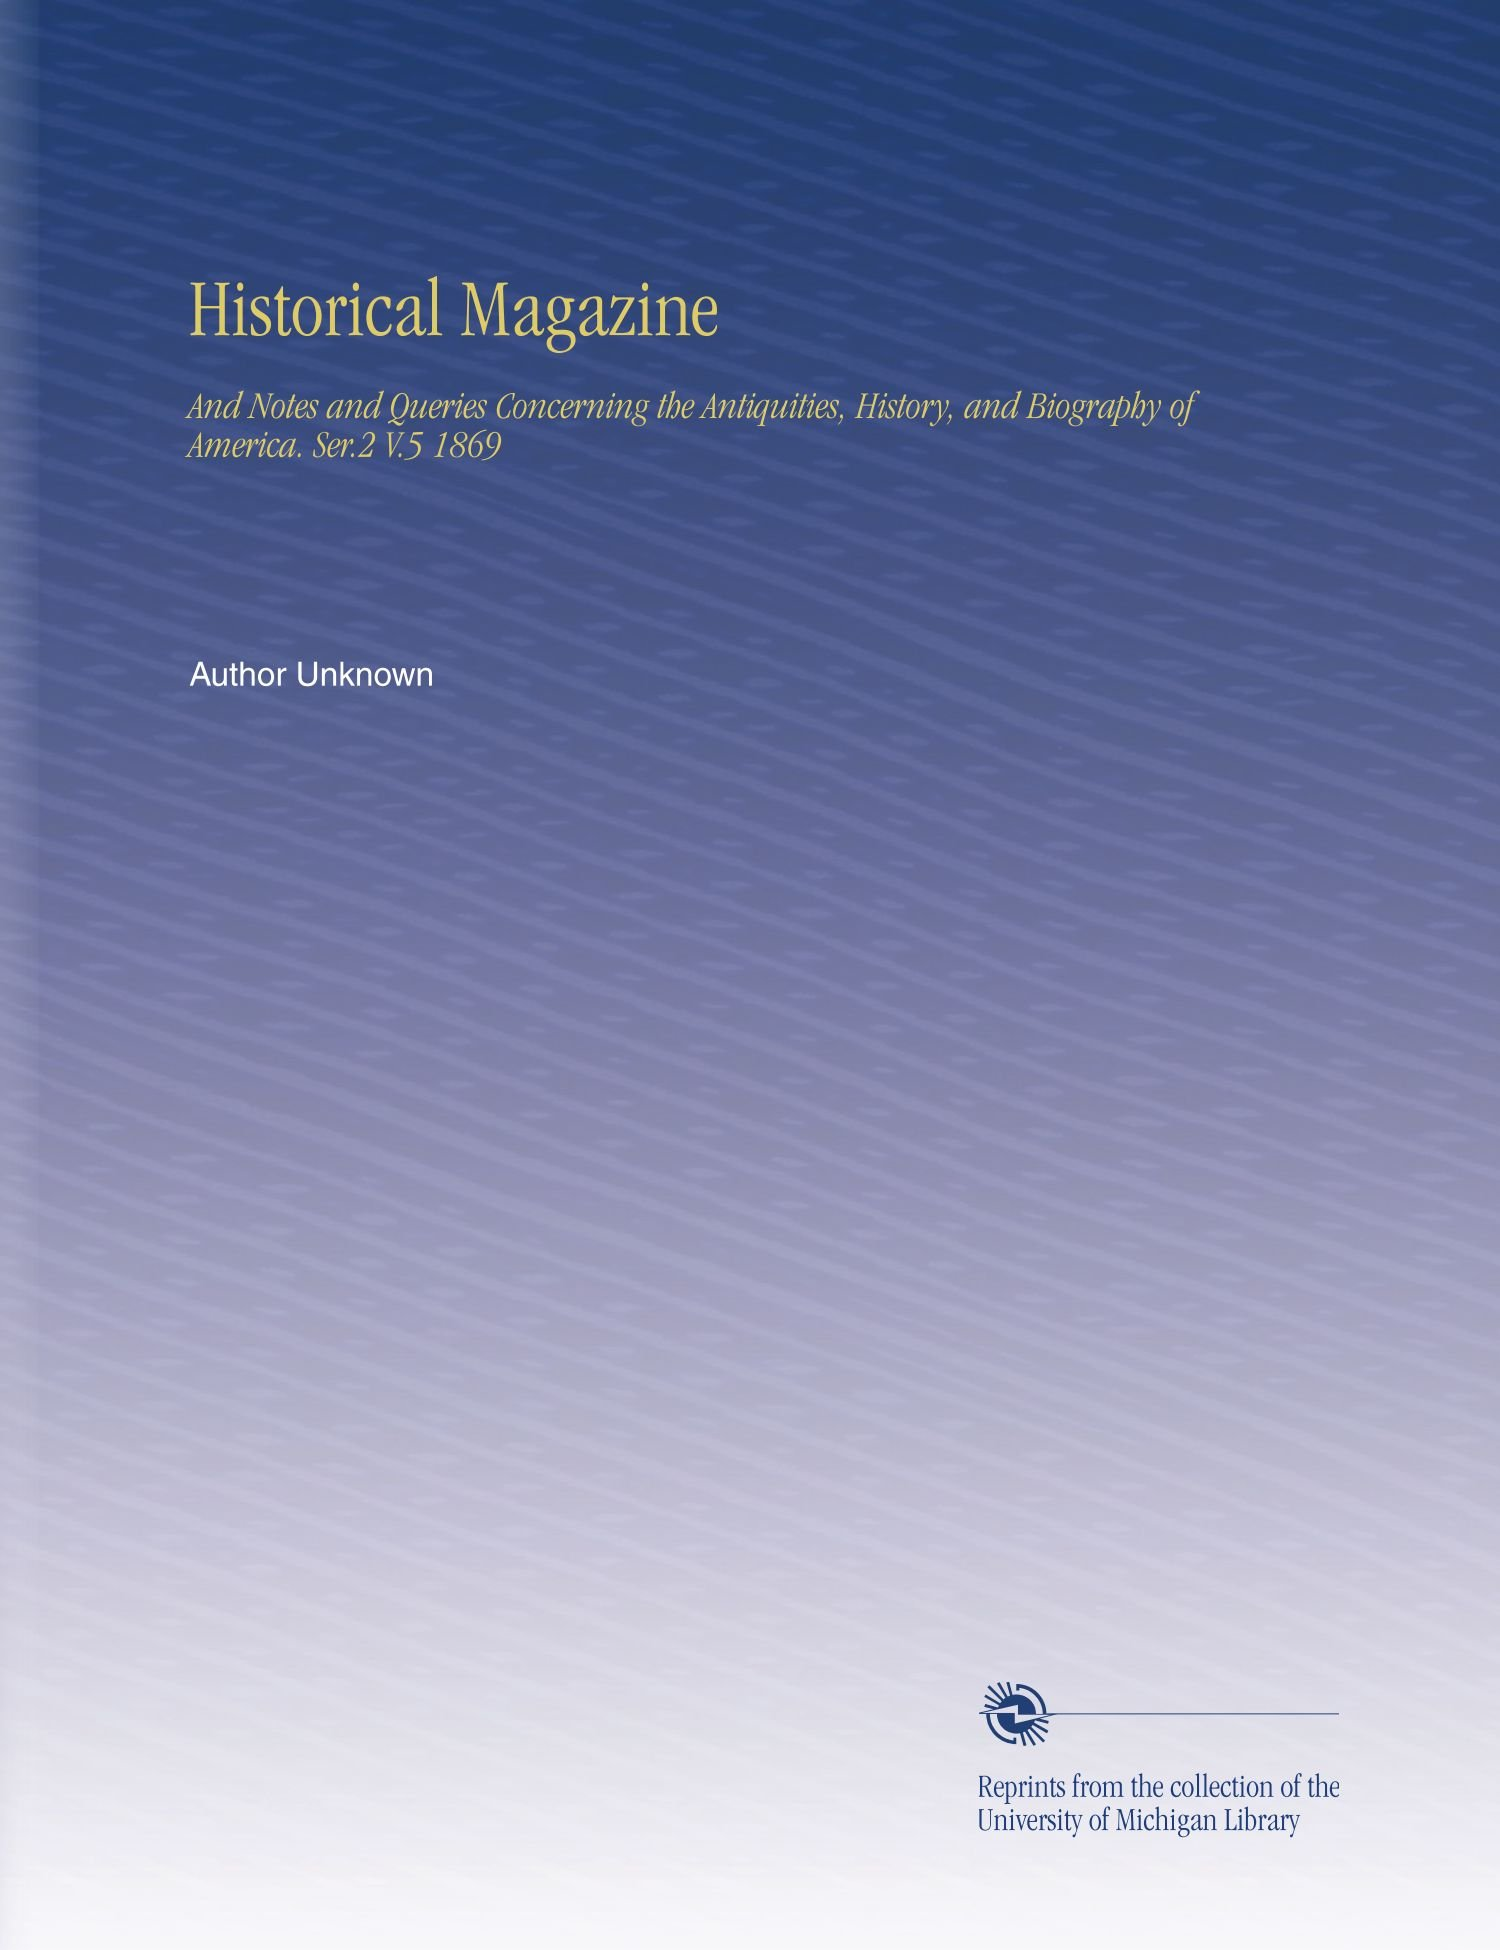 Historical Magazine: And Notes and Queries Concerning the Antiquities, History, and Biography of America. Ser.2 V.5 1869 pdf